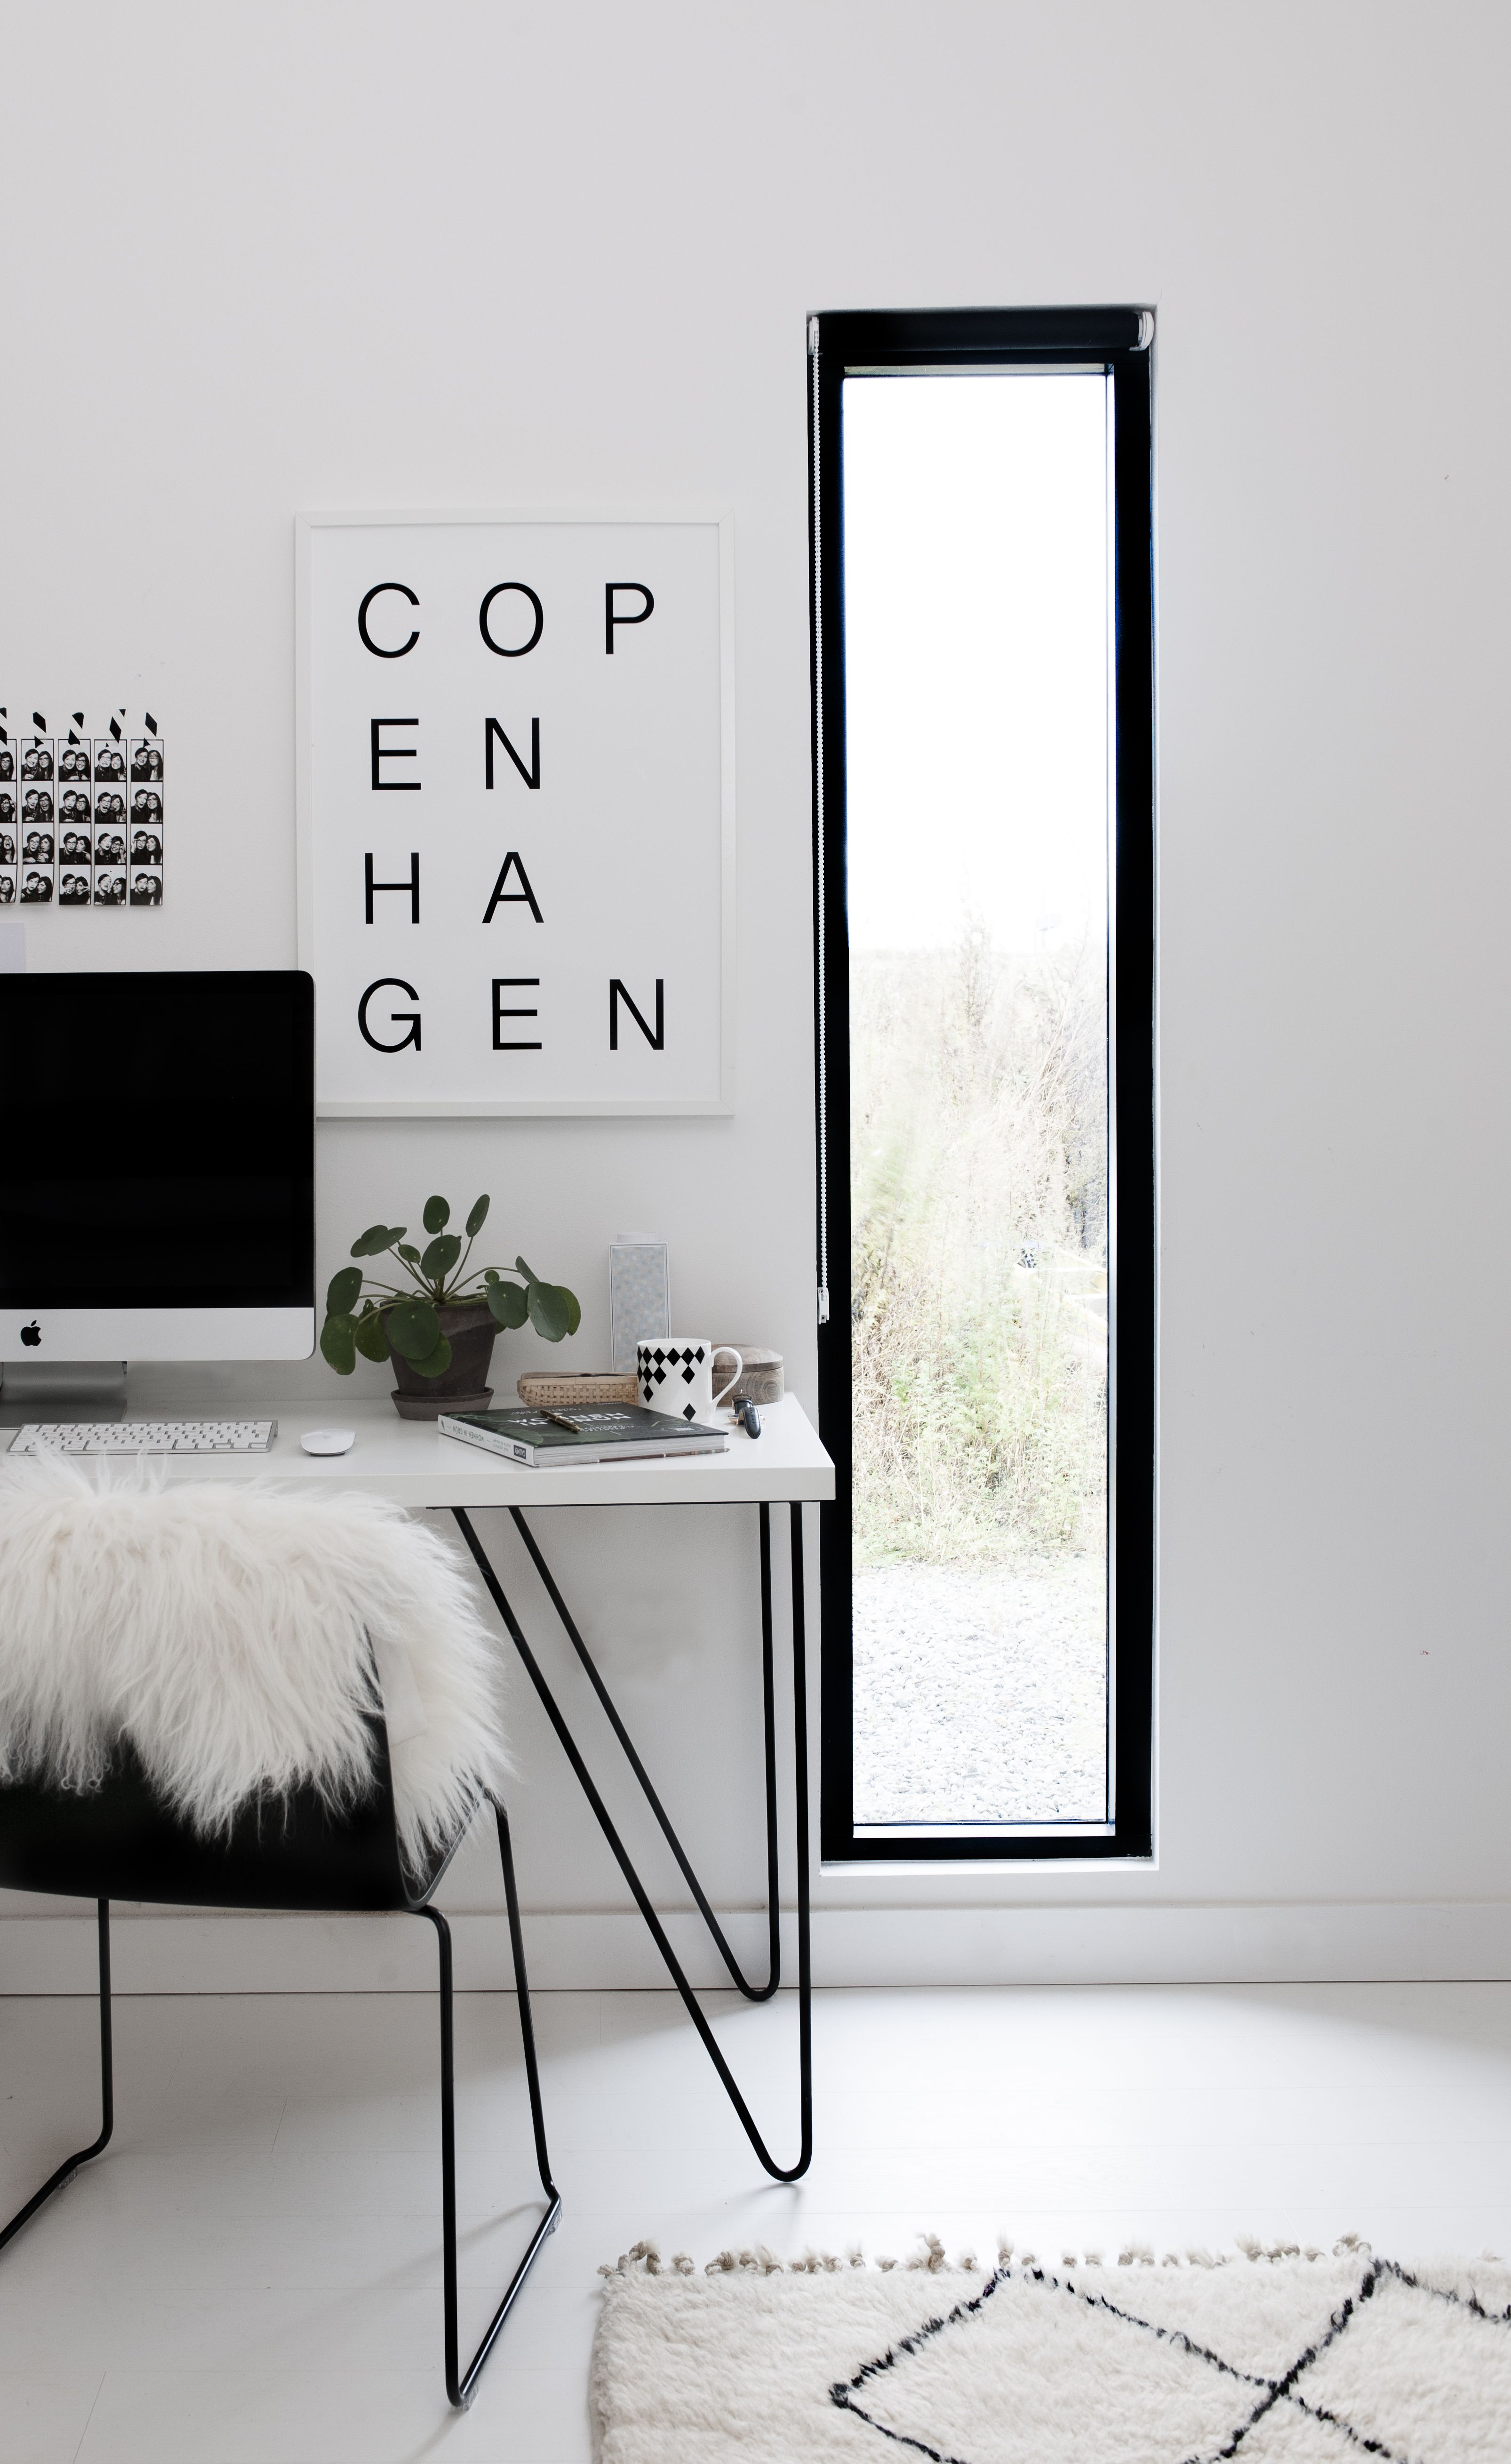 Copenhagen Black And White Print By SOOuK   Scandinavian Workspace With  Berber Rug And Sheepskin